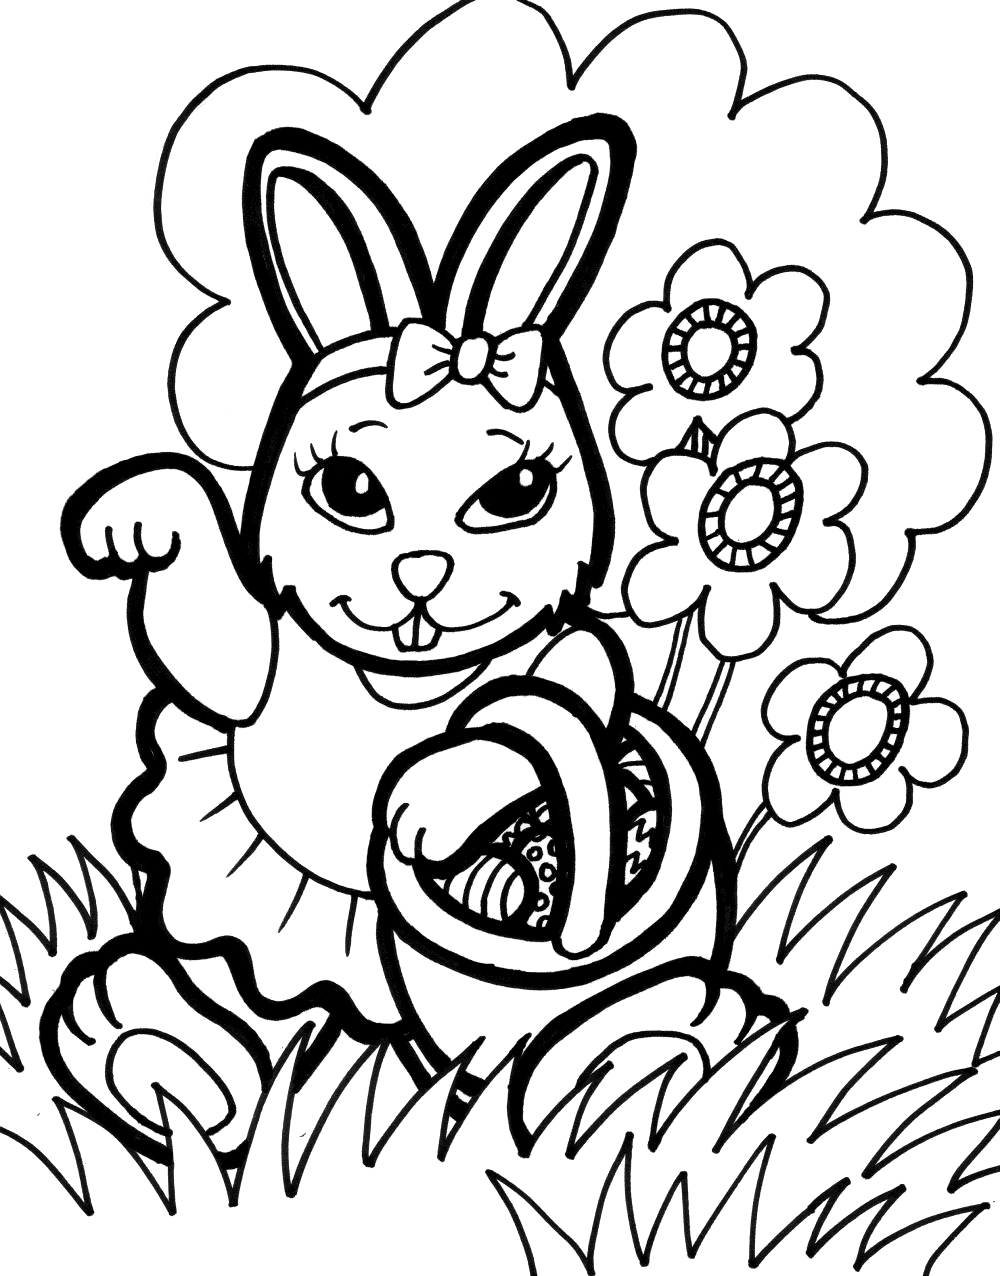 coloring pages for children 40 free printable coloring pages for kids children pages coloring for